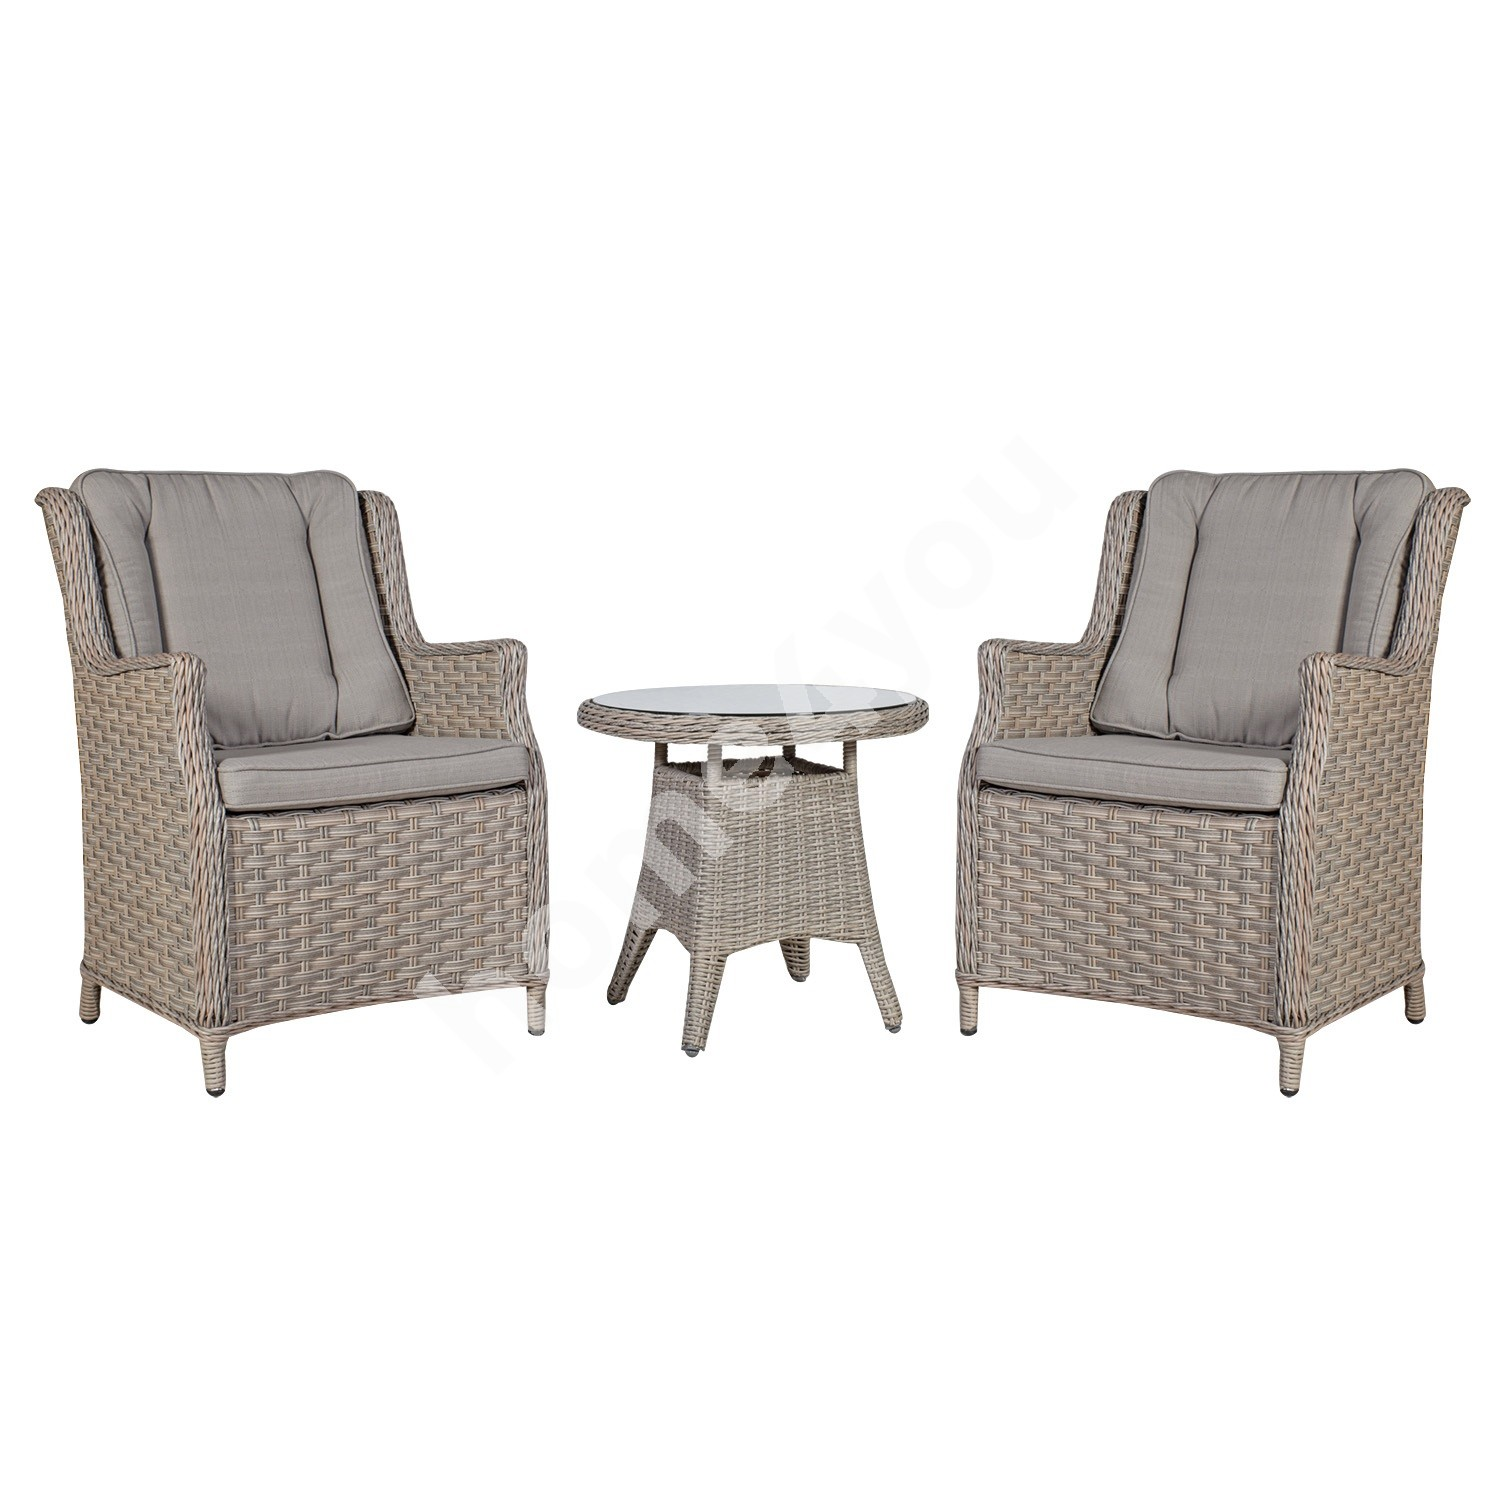 Garden furniture set PACIFIC table and 2 chairs (10494) D60xH55cm, aluminum frame with plastic wicker, color: greyish be